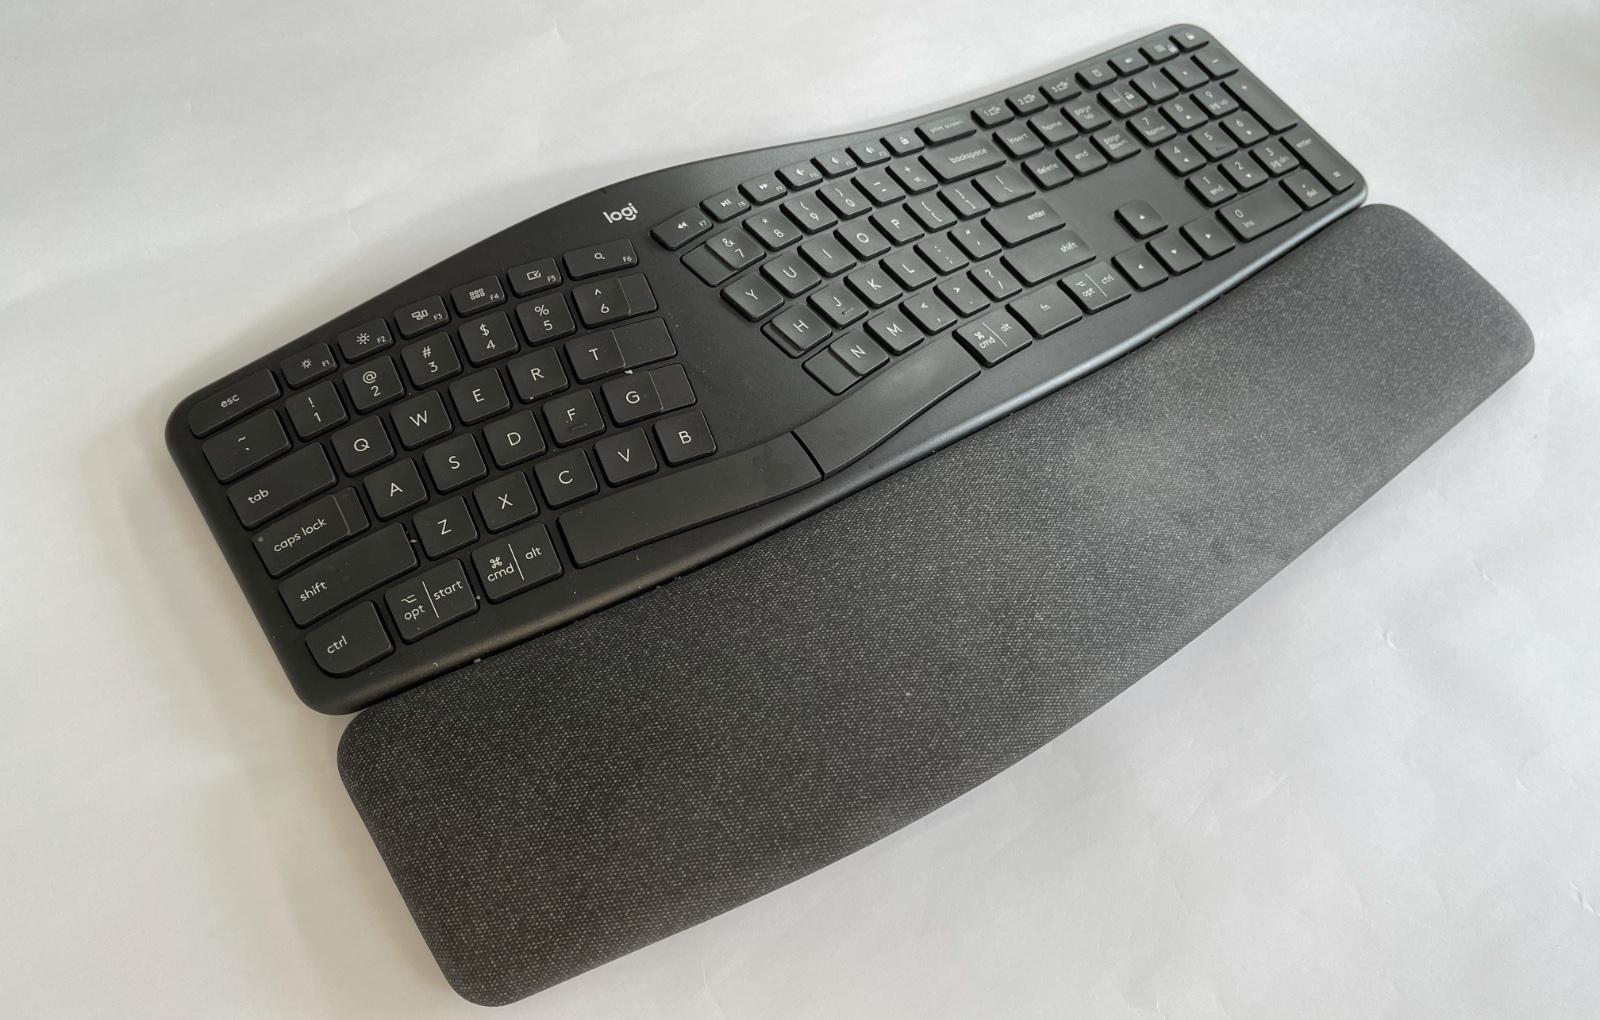 Those who never learnt to touch-type could have some initial teething issues using the K860.